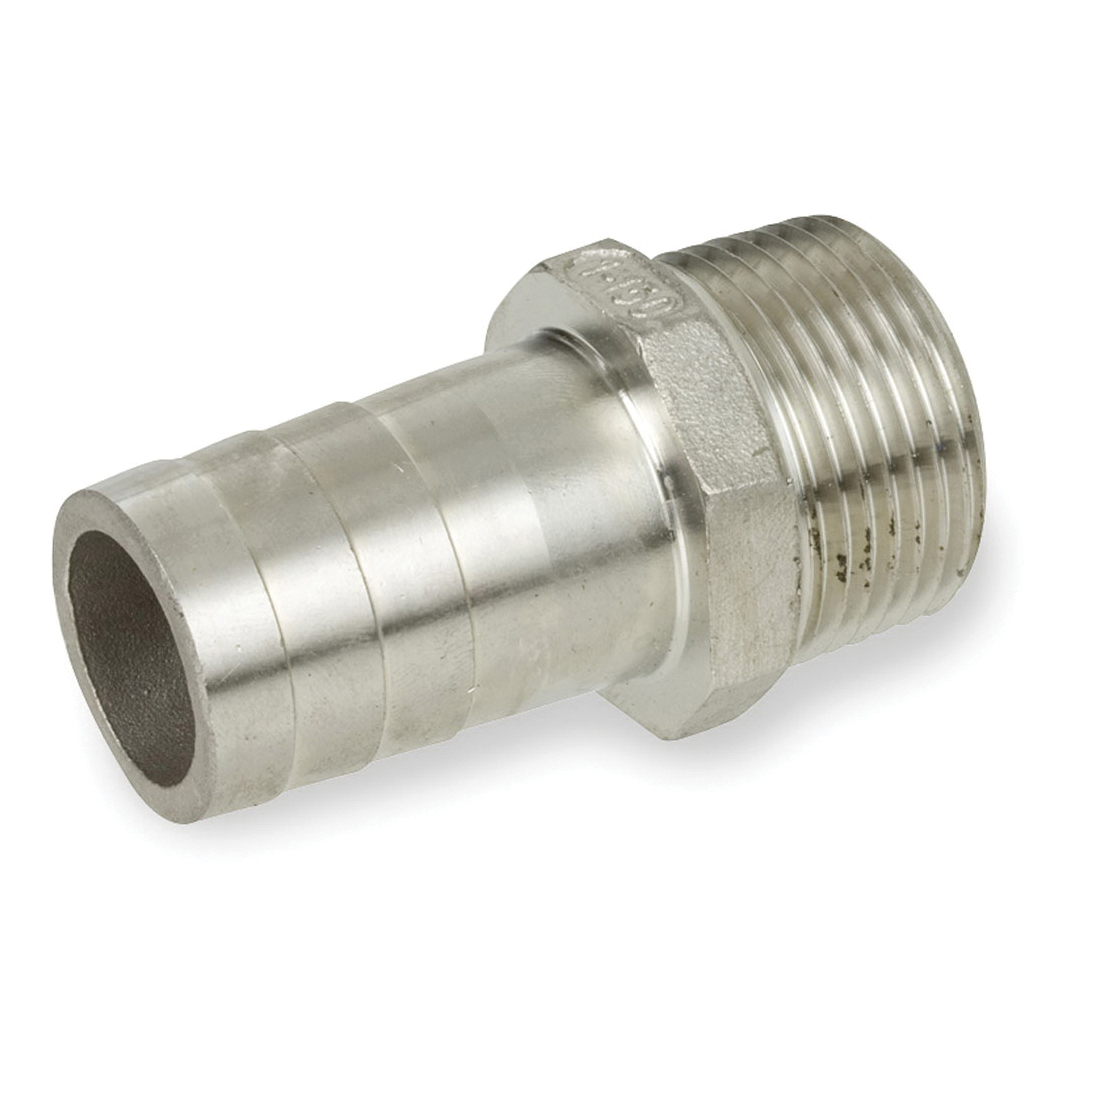 Smith-Cooper® S8346KN006 King Nipple, 3/4 in, Hose x Thread, 316 Stainless Steel